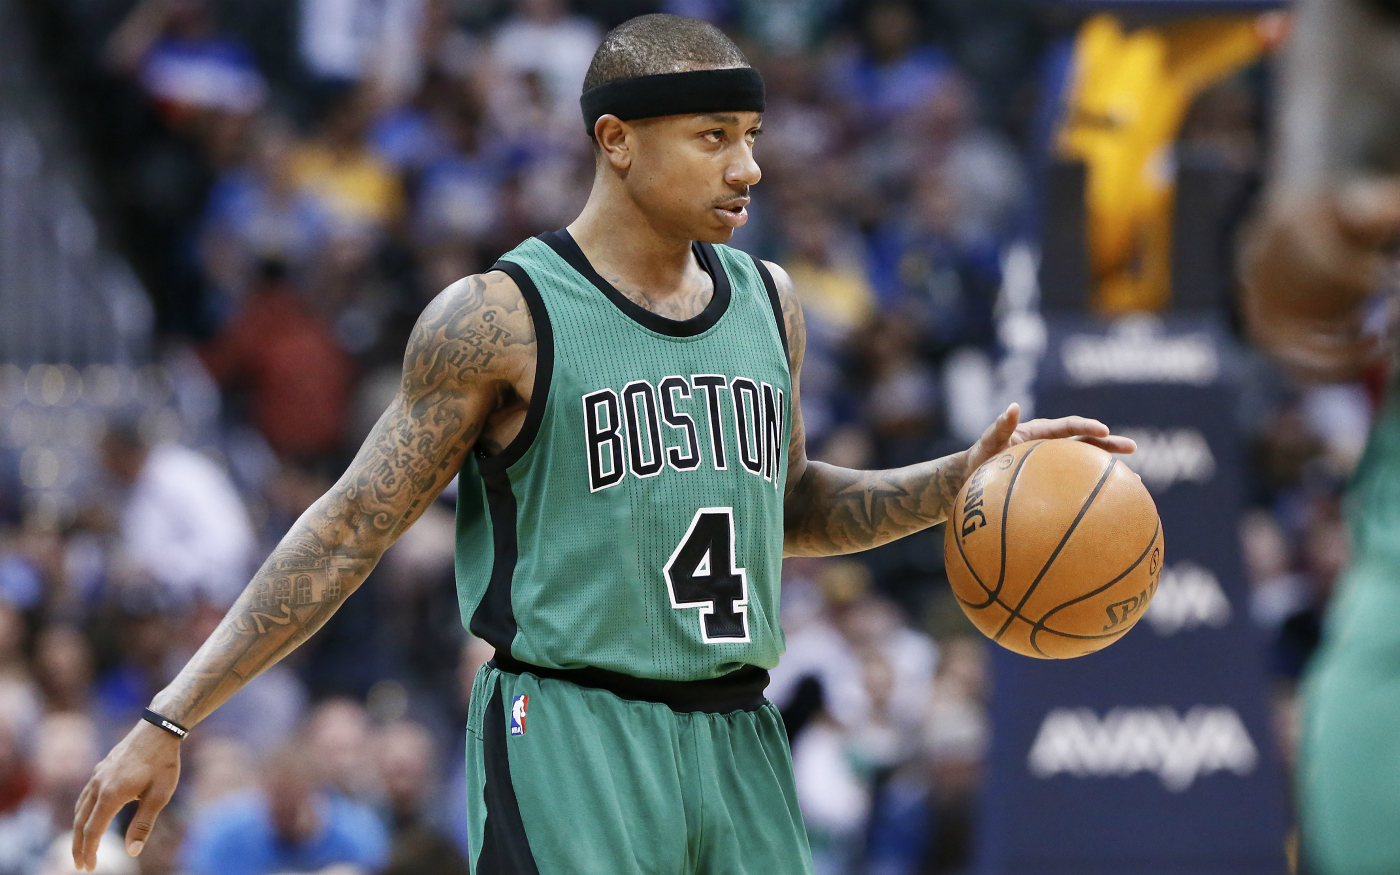 Isaiah Thomas, l'autre gagnant du trade Boston-Philly